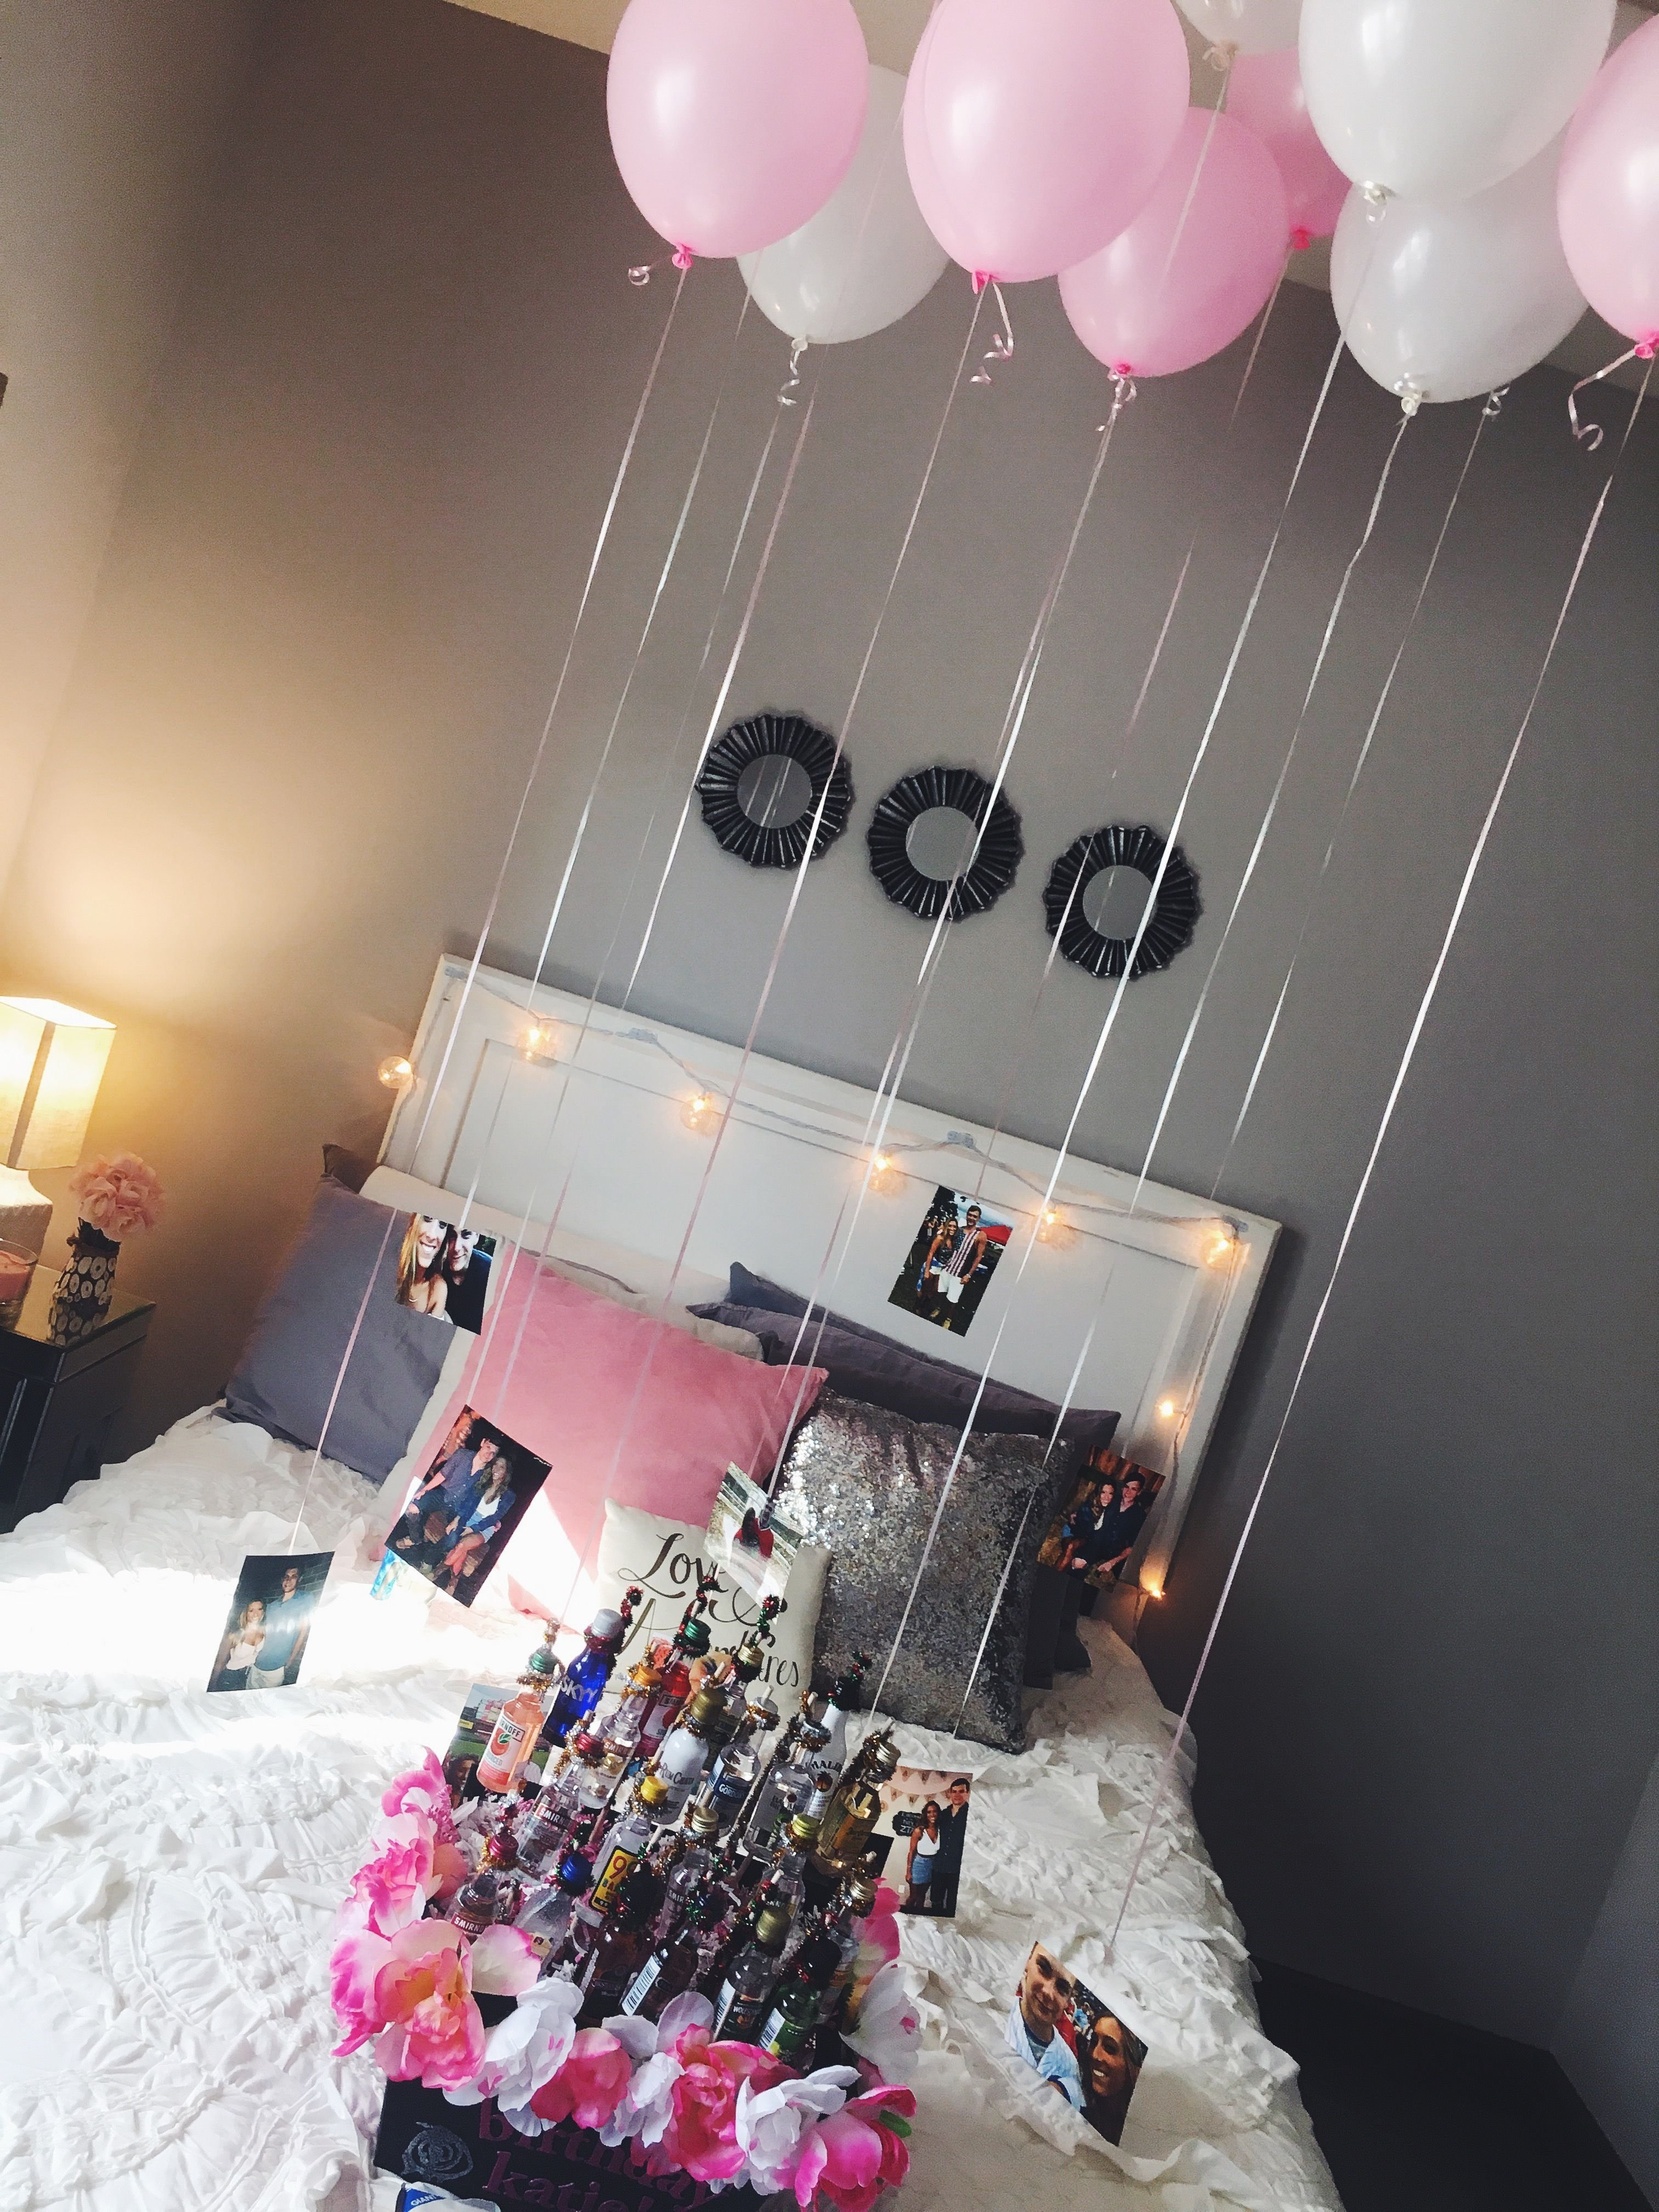 10 Stylish Cheap Birthday Ideas For Girlfriend Easy And Cute Decorations A Friend Or Girlfriends